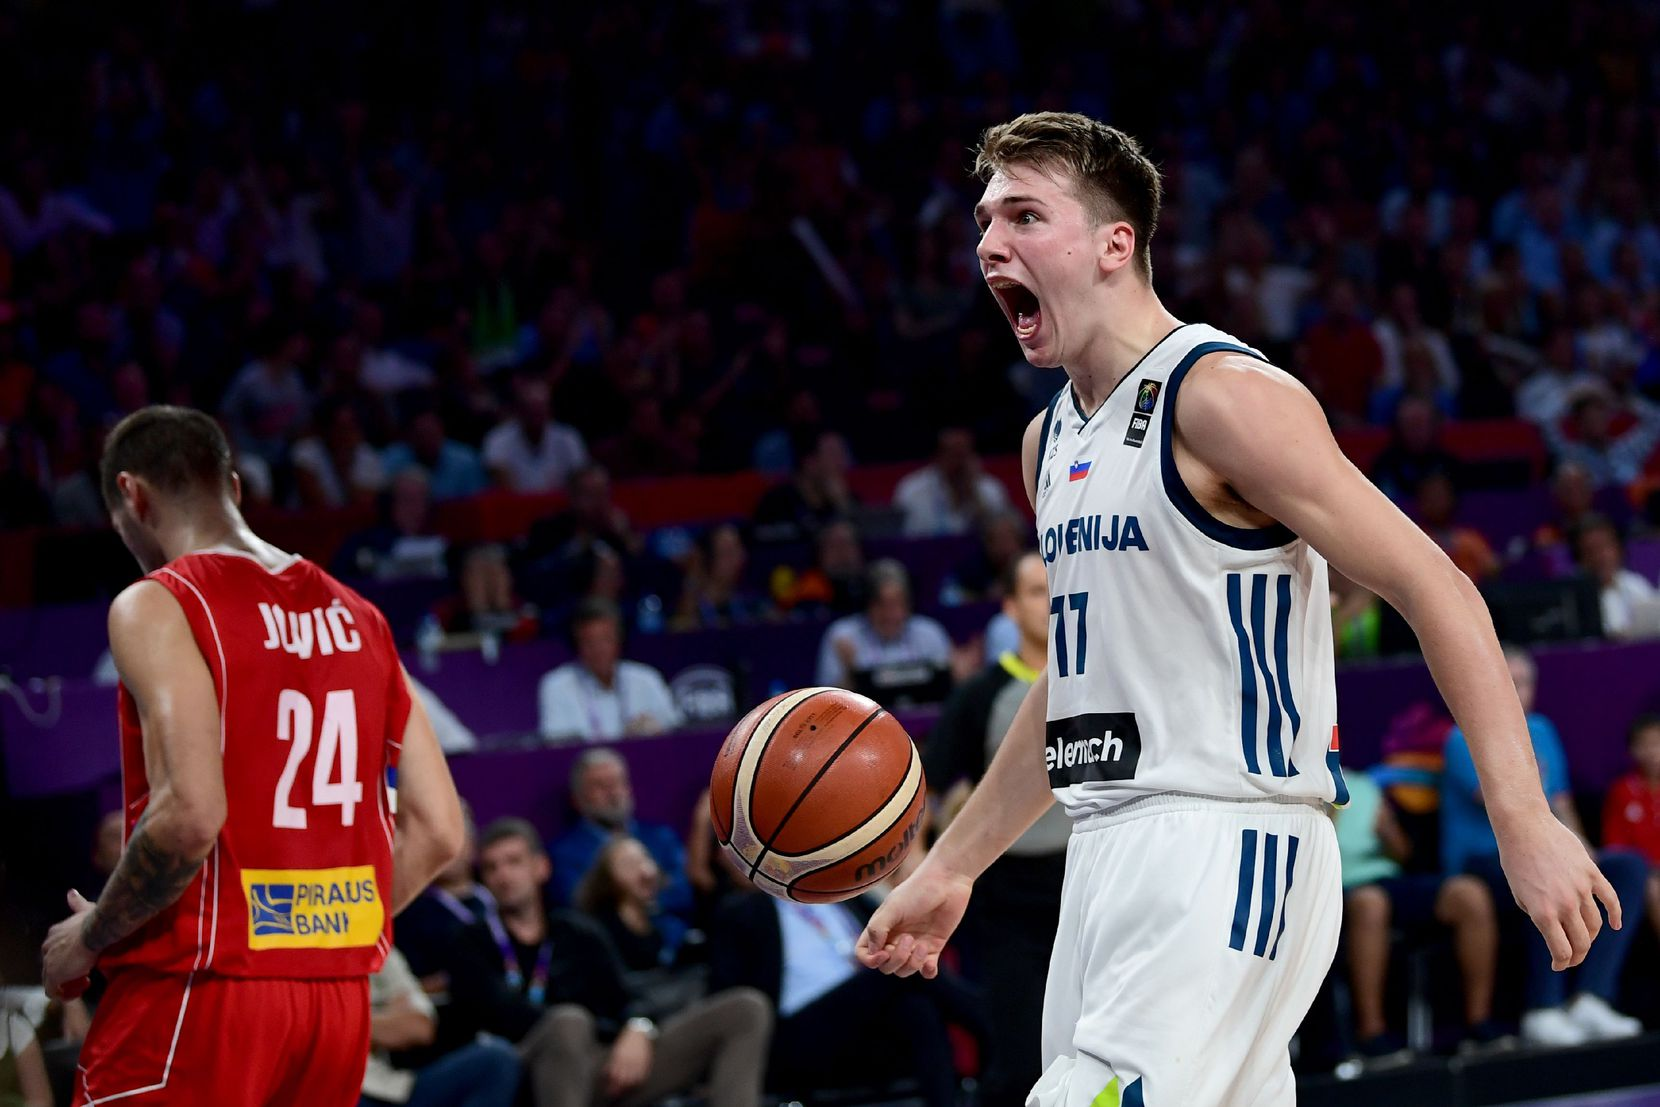 FILE - Slovenia guard Luka Doncic (right) is pictured during the 2017 FIBA EuroBasket men's final between Slovenia and Serbia at Sinan Erdem Sport Arena in Istanbul on Sept. 17, 2017. (OZAN KOSE/AFP PHOTO/Getty Images)